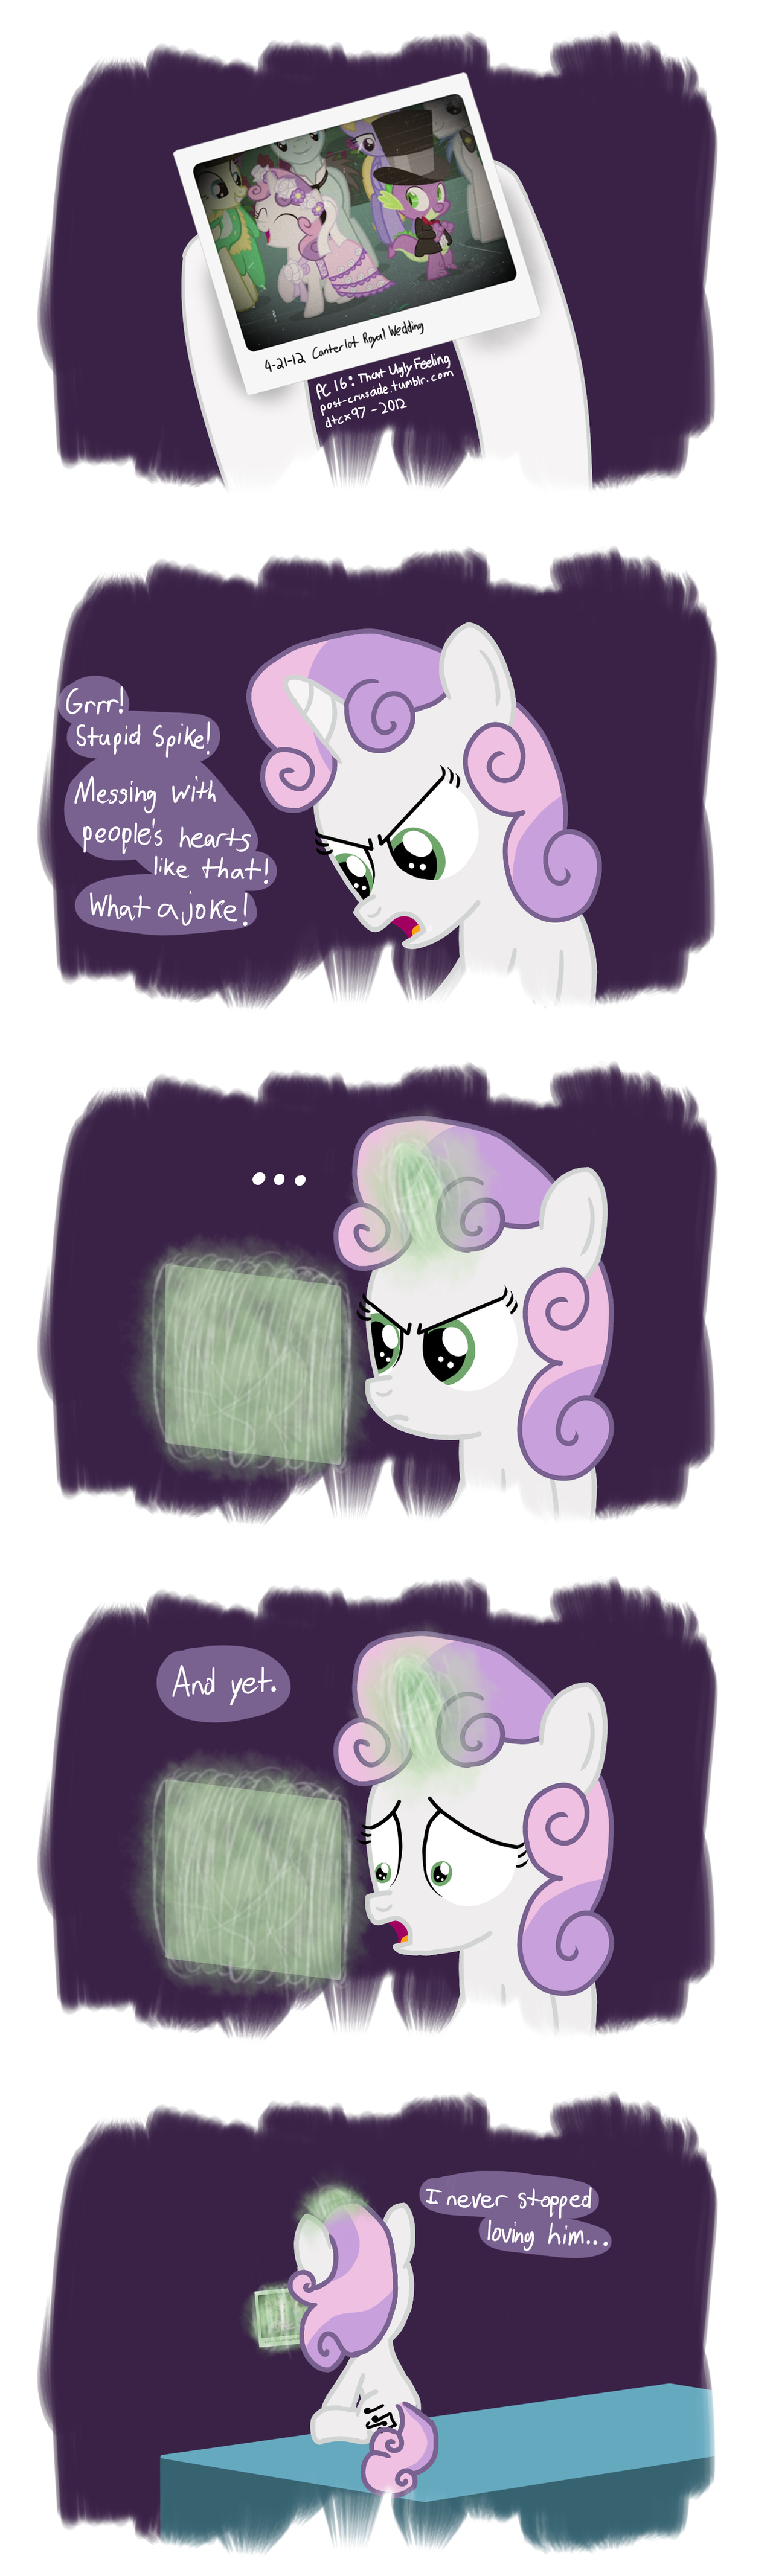 PC 16: That Ugly Feeling by postcrusade